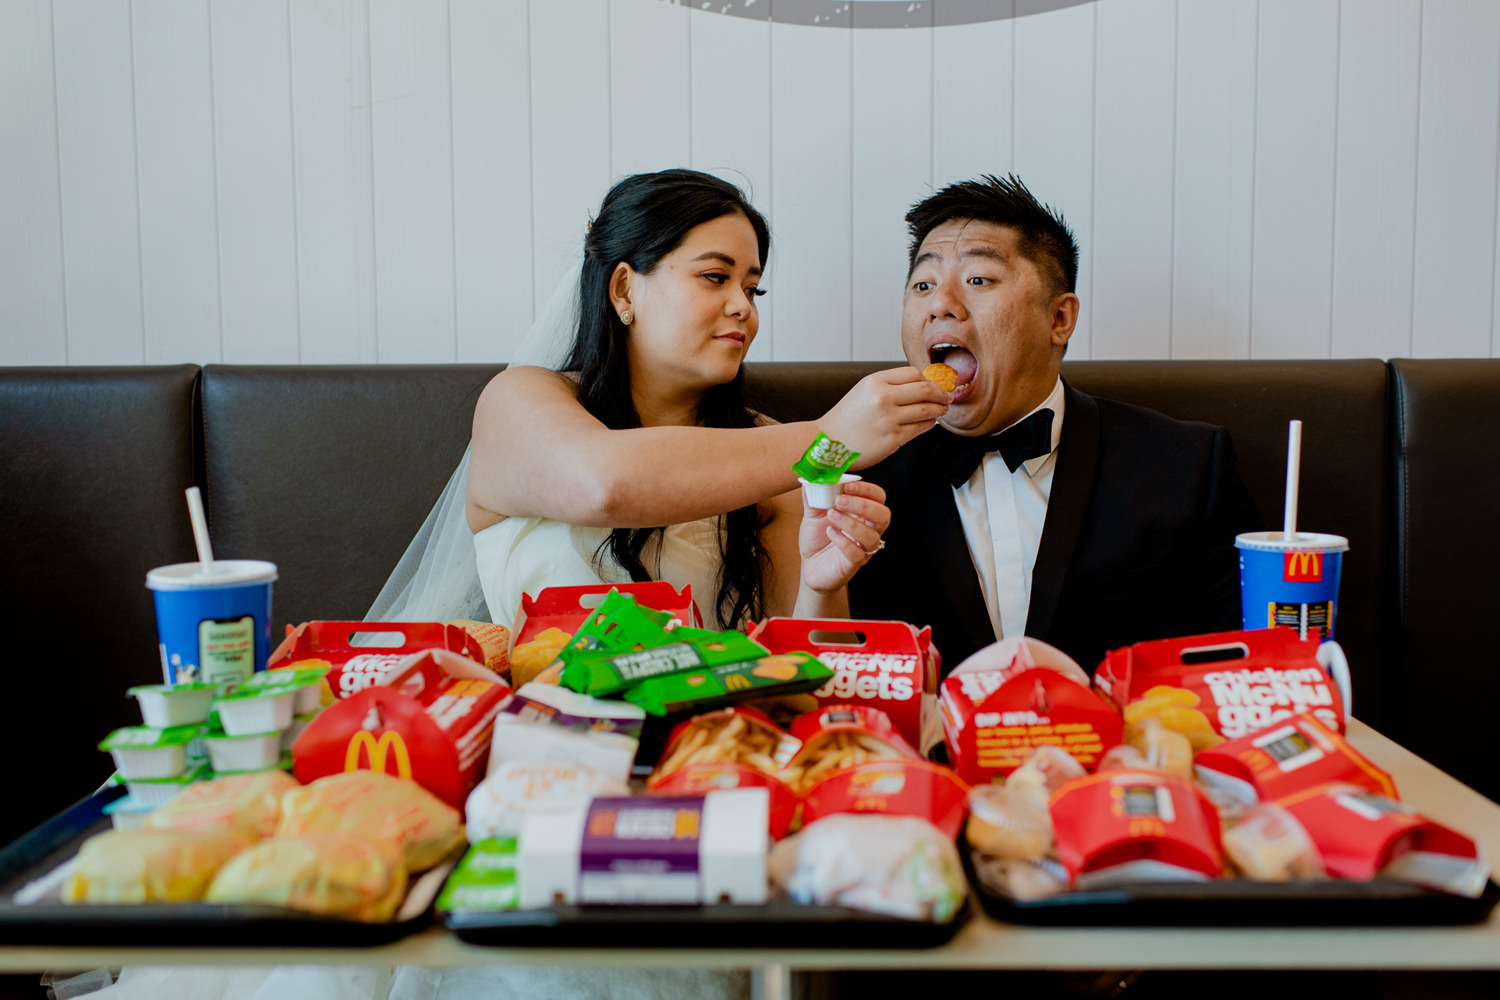 Bride feeding her husband chicken nuggets with table full of Mcdonalds